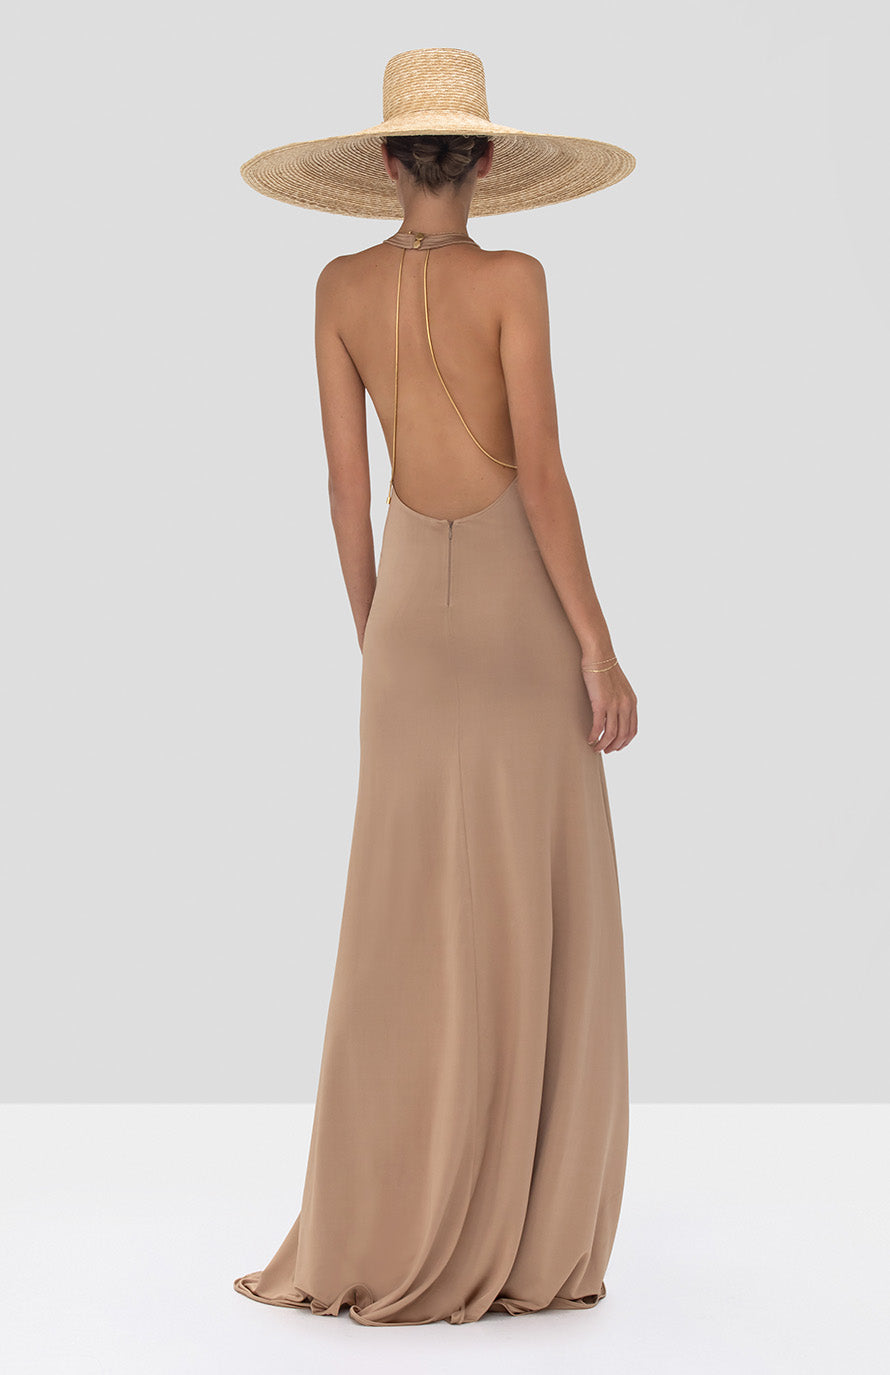 Alexis Xaverie Dress in Tan from the Spring Summer 2020 Collection - Rear View